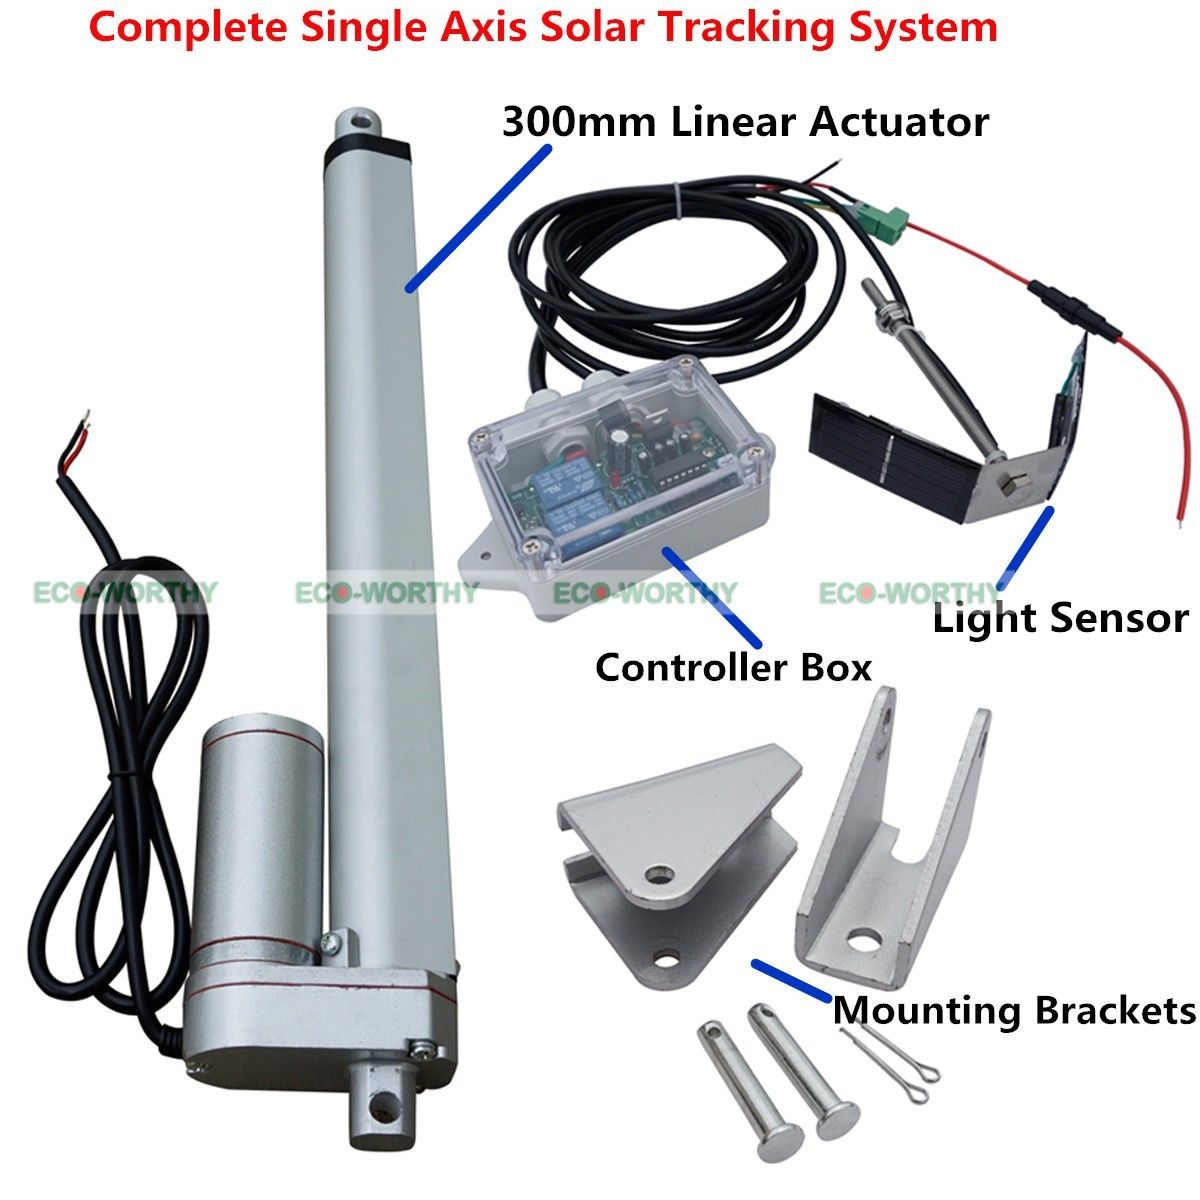 Dhl Free Shipping Single Axis Complete 1kw Solar Tracking Kits 14 Easiest Tracker Circuit System Diagram Schematic 12v Kit 12linear Actuator